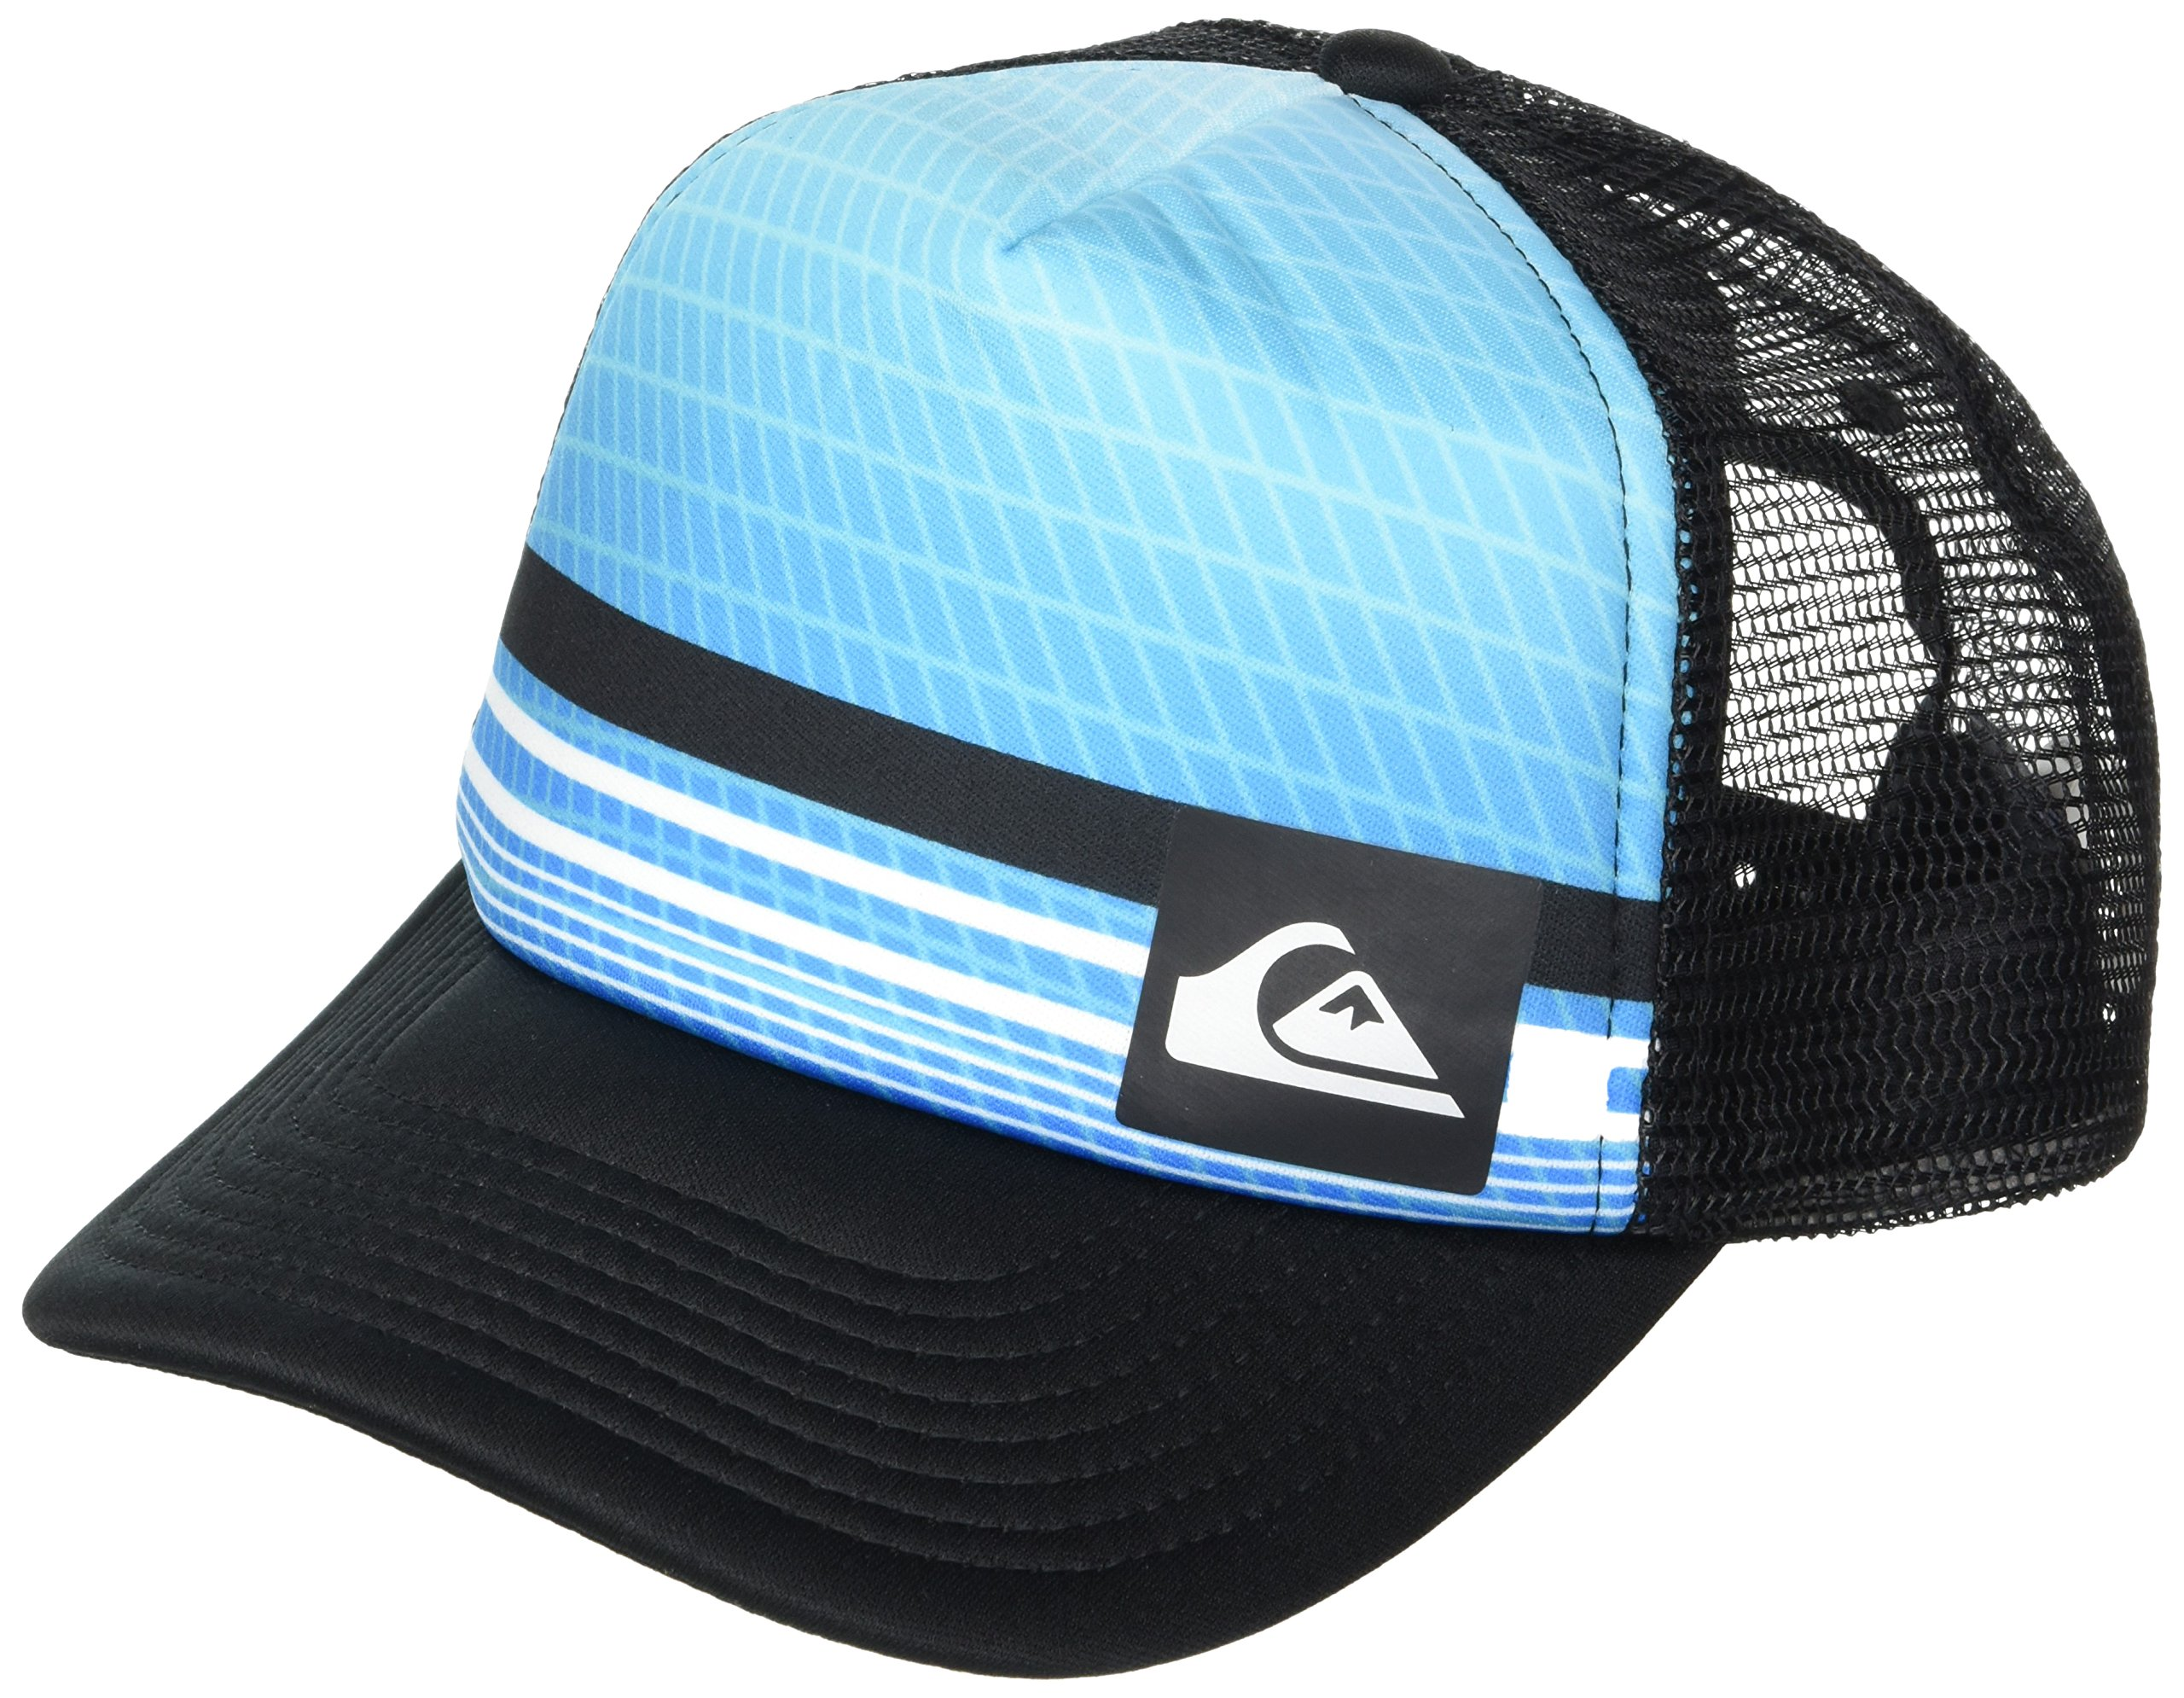 ab2704b9cb10c Get Quotations · Quiksilver Boys  Foamnation Kids Hat